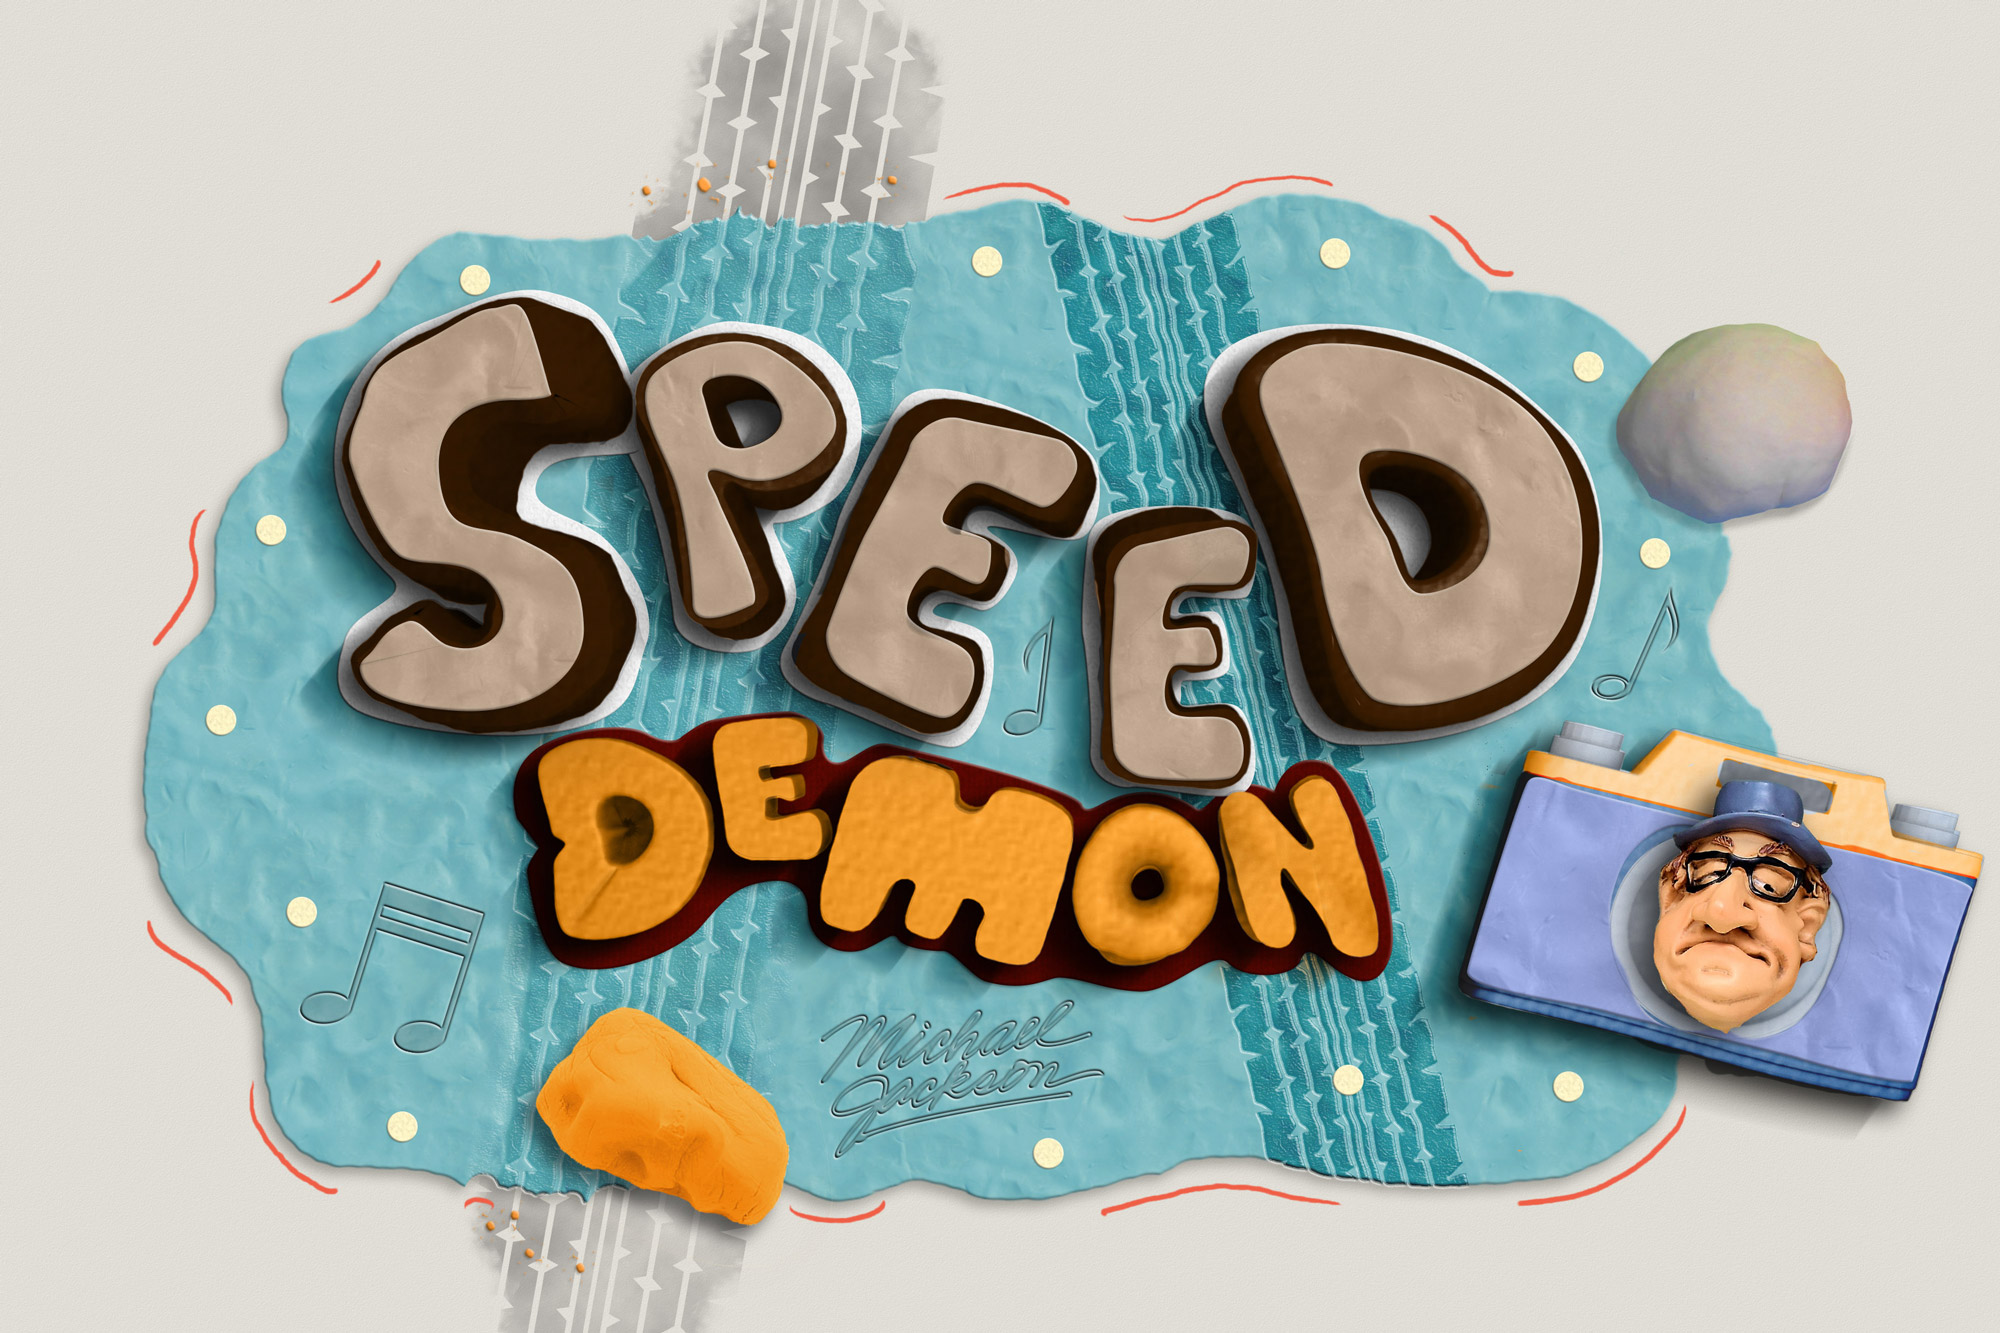 Speed demon